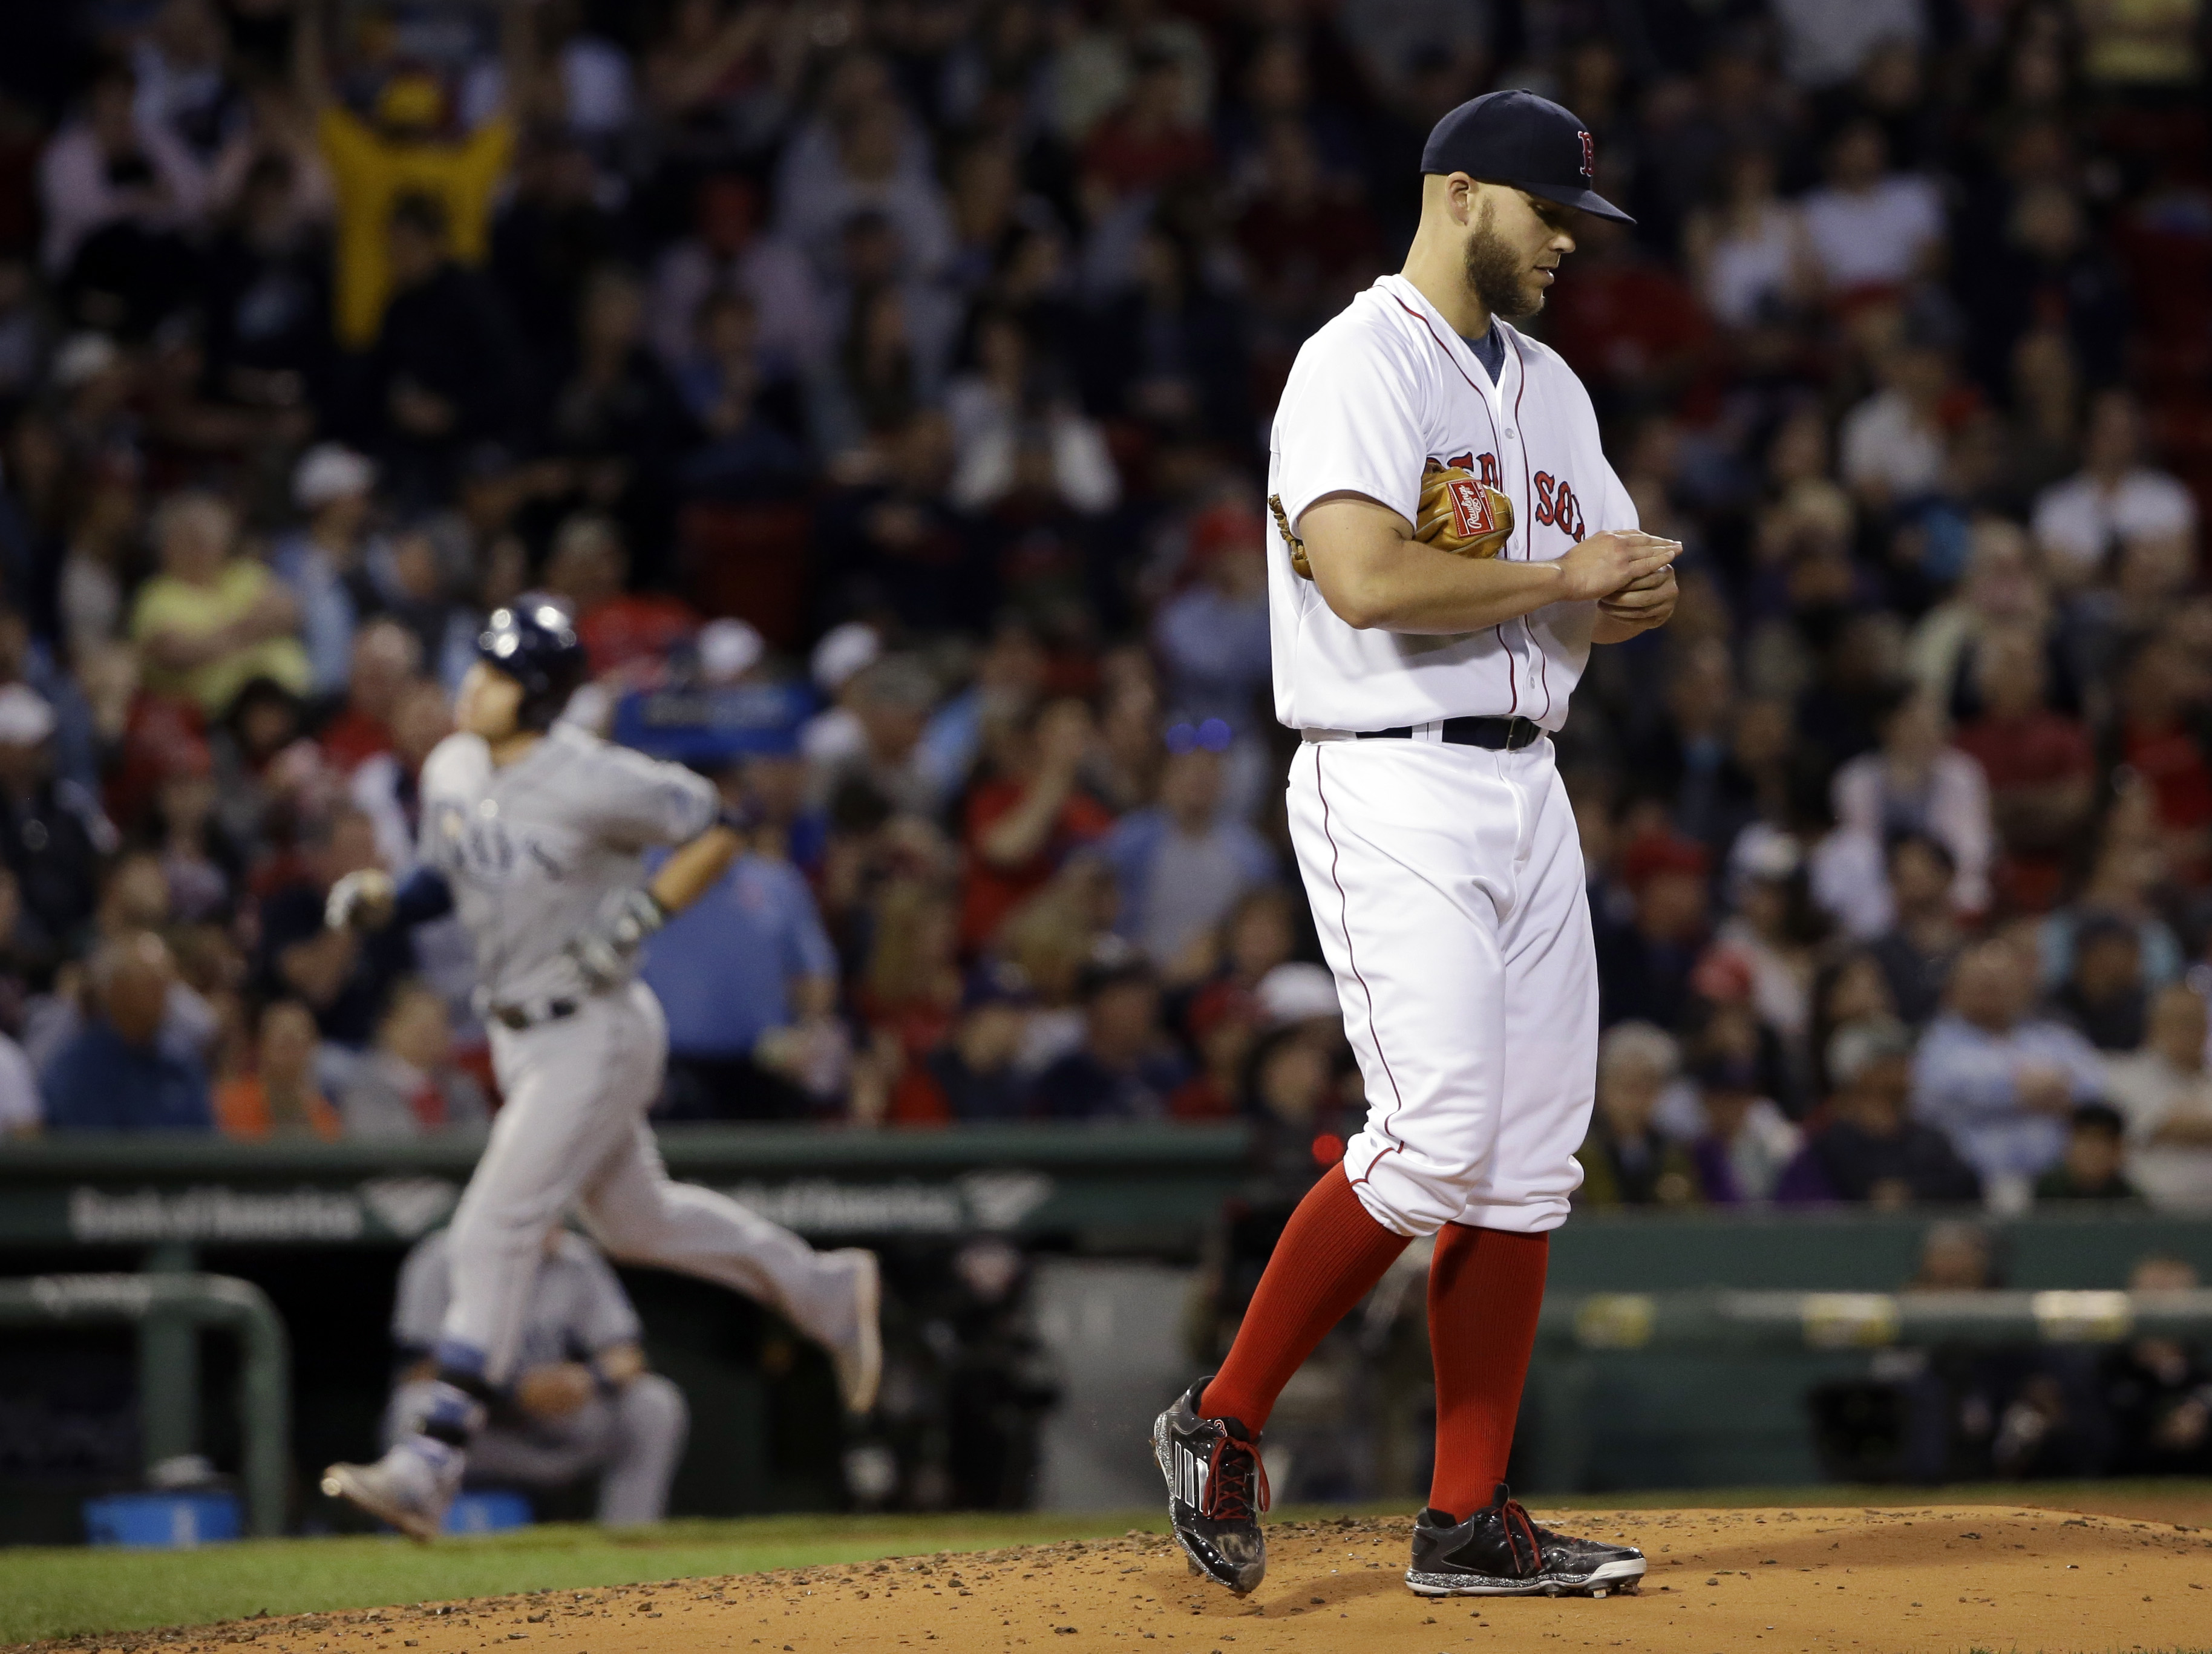 Boston Red Sox starting pitcher Justin Masterson reacts as Tampa Bay Rays' Evan Longoria rounds third base with a solo homer in the fourth inning of a baseball game at Fenway Park in Boston, Wednesday, May 6, 2015. (AP Photo/Elise Amendola)